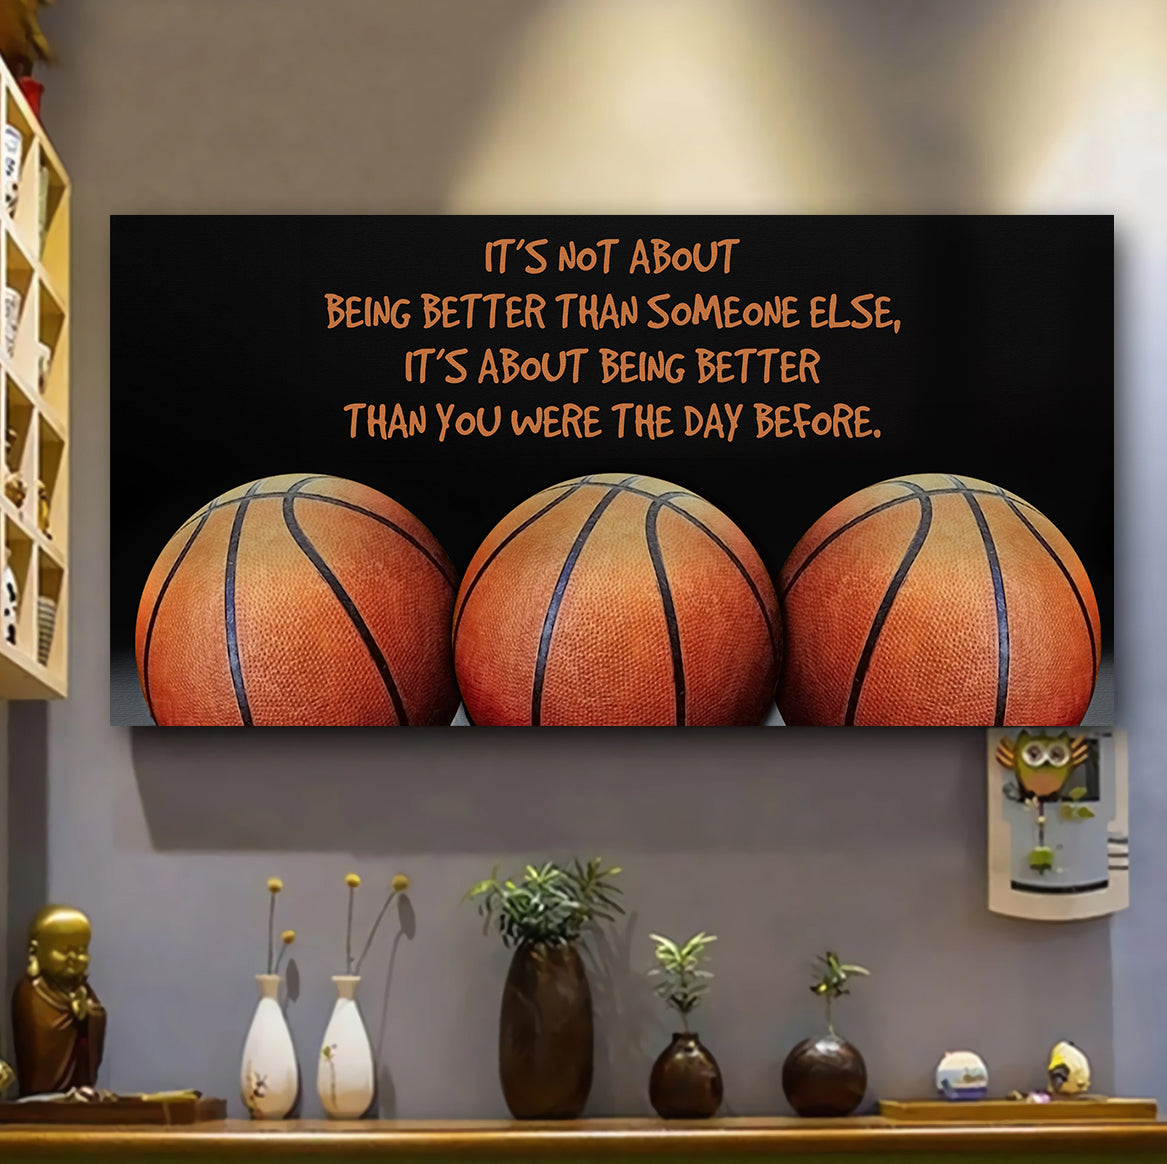 (QH657) Customizable basketball poster - It's not about better  - FREE SHIPPING ON ORDERS OVER $75